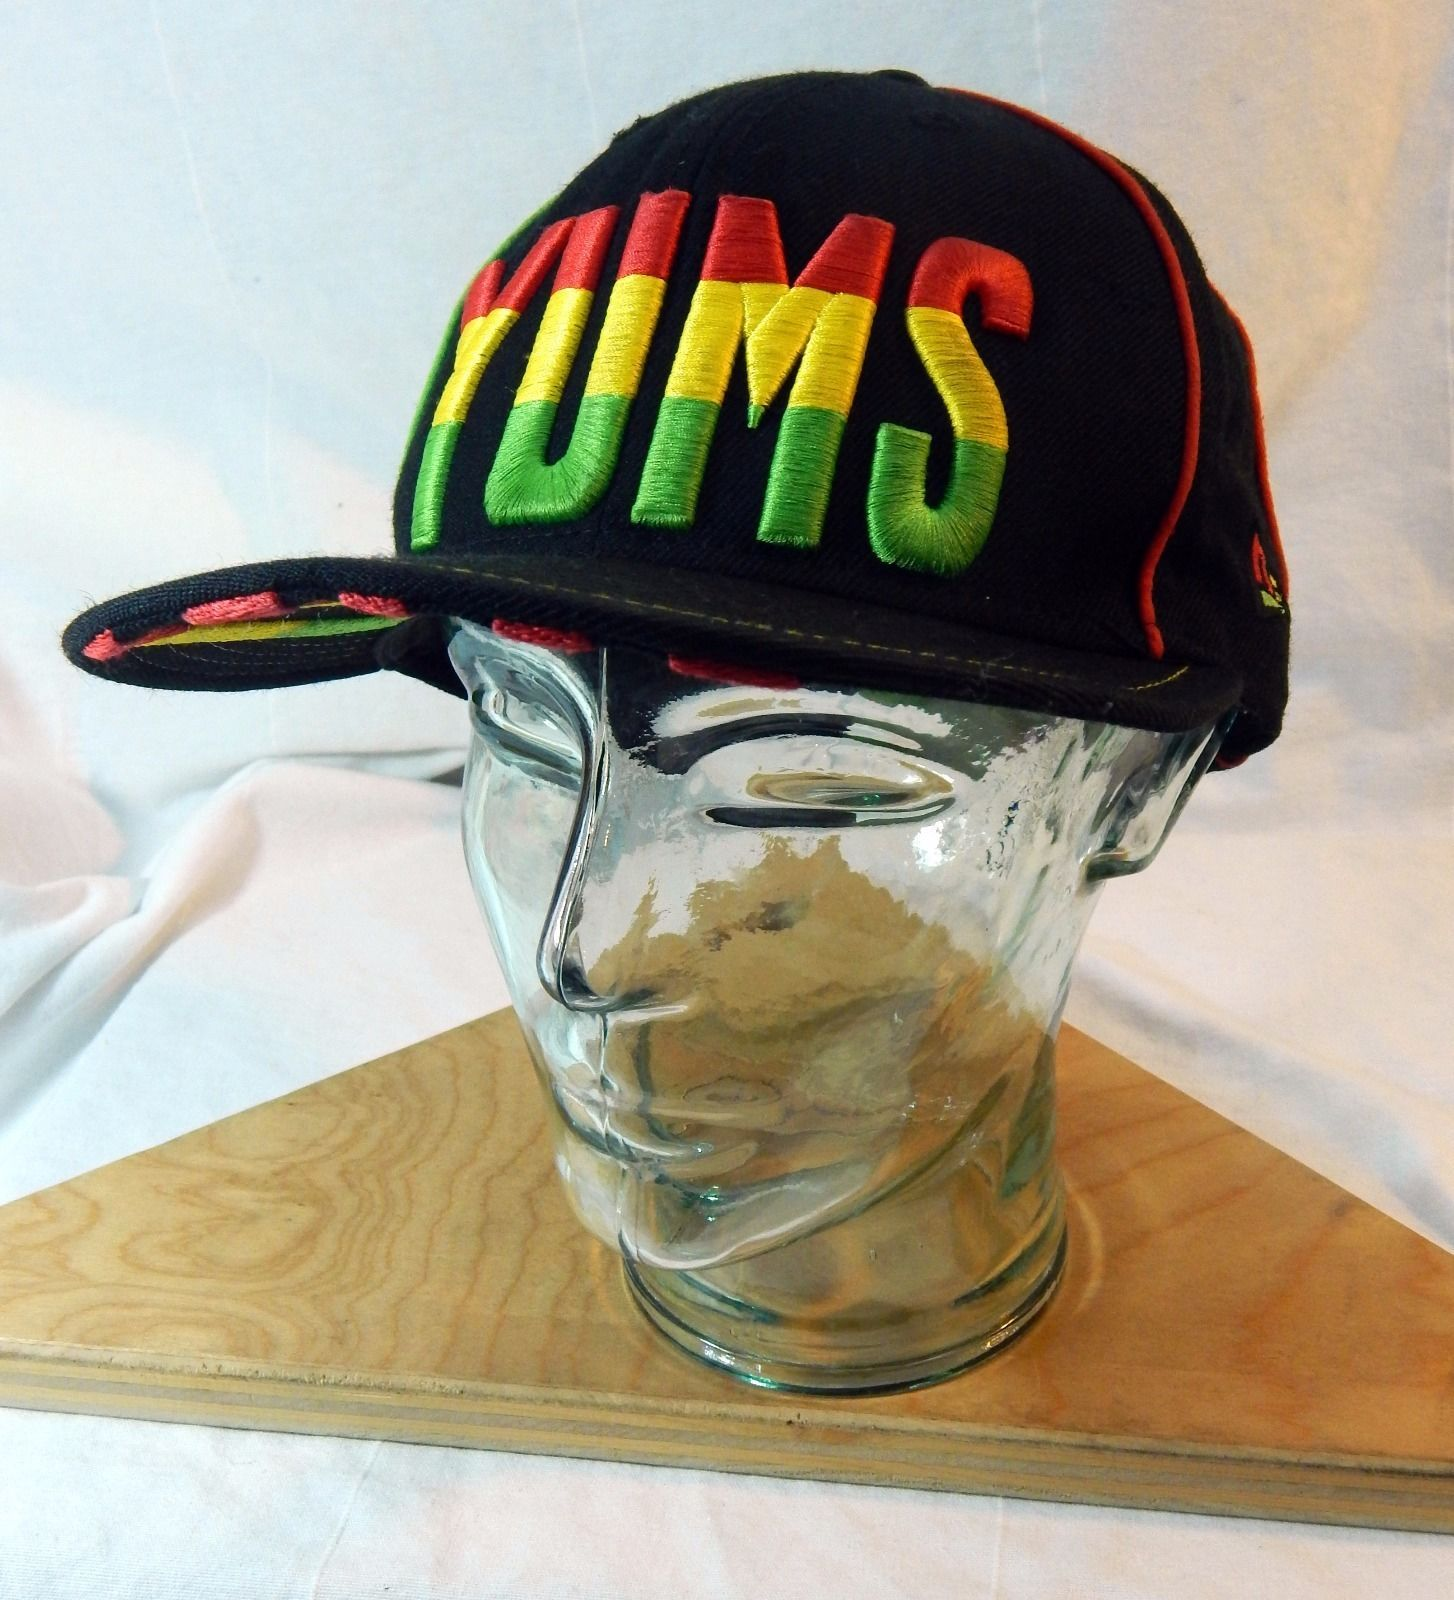 buy online a387c a34ff 57. 57. Previous. YUMS Rasta Snapback Hat Adjustable One Size Red Yellow  Green New Era